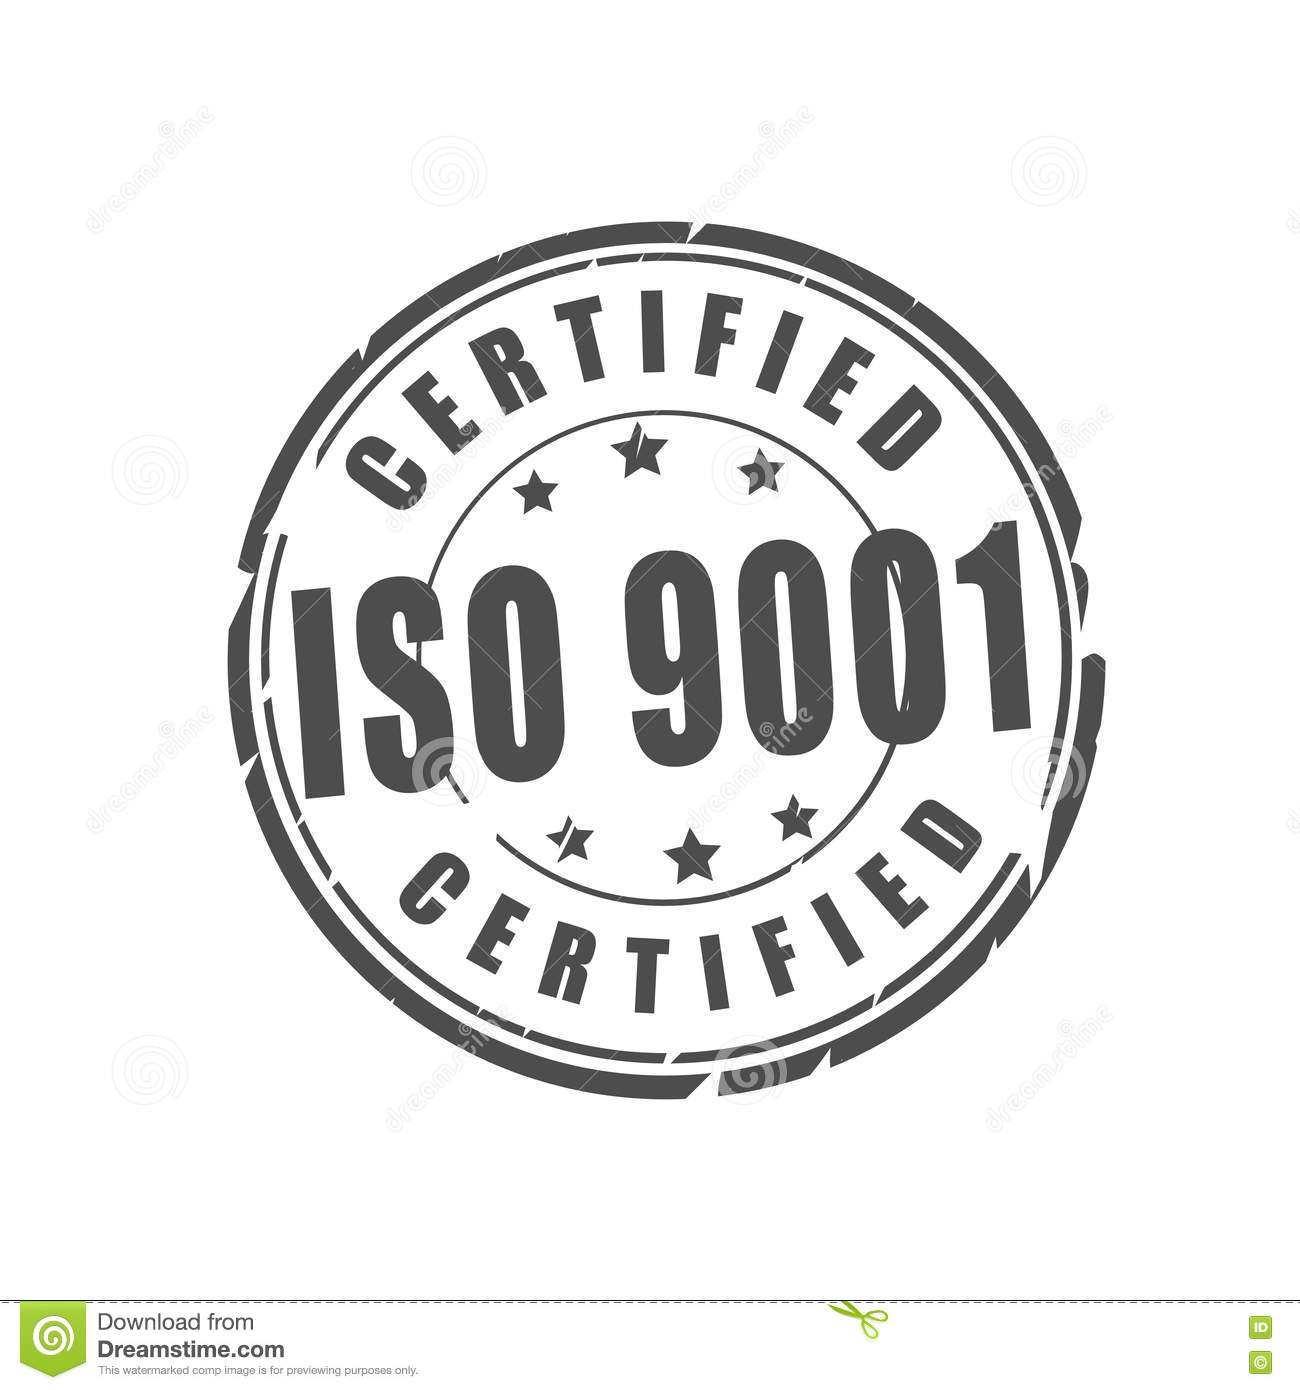 ISO 9001 Certified Vector Illustration Stamp